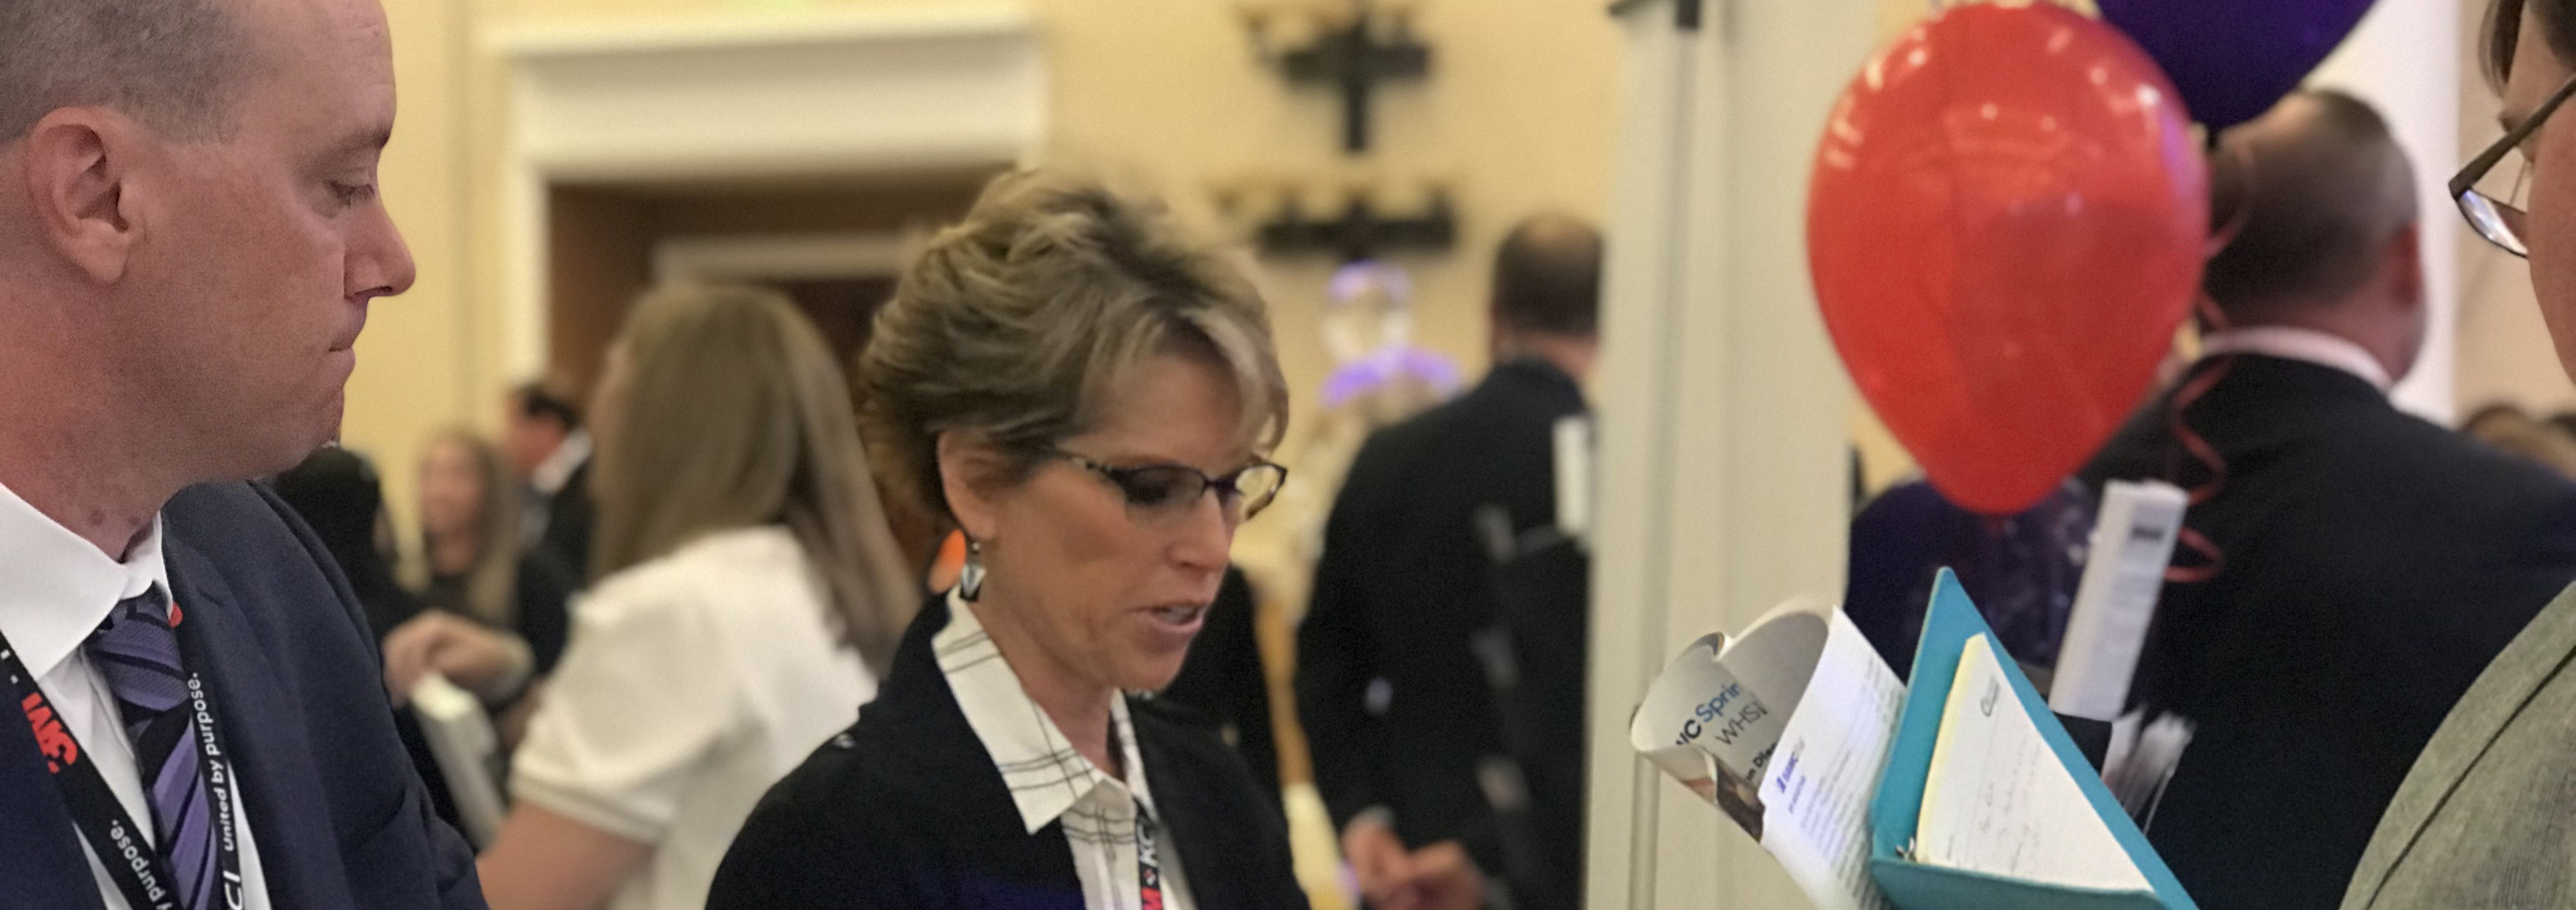 KCI Highlights Advanced Wound Care and Surgical Innovations at Fall 2019